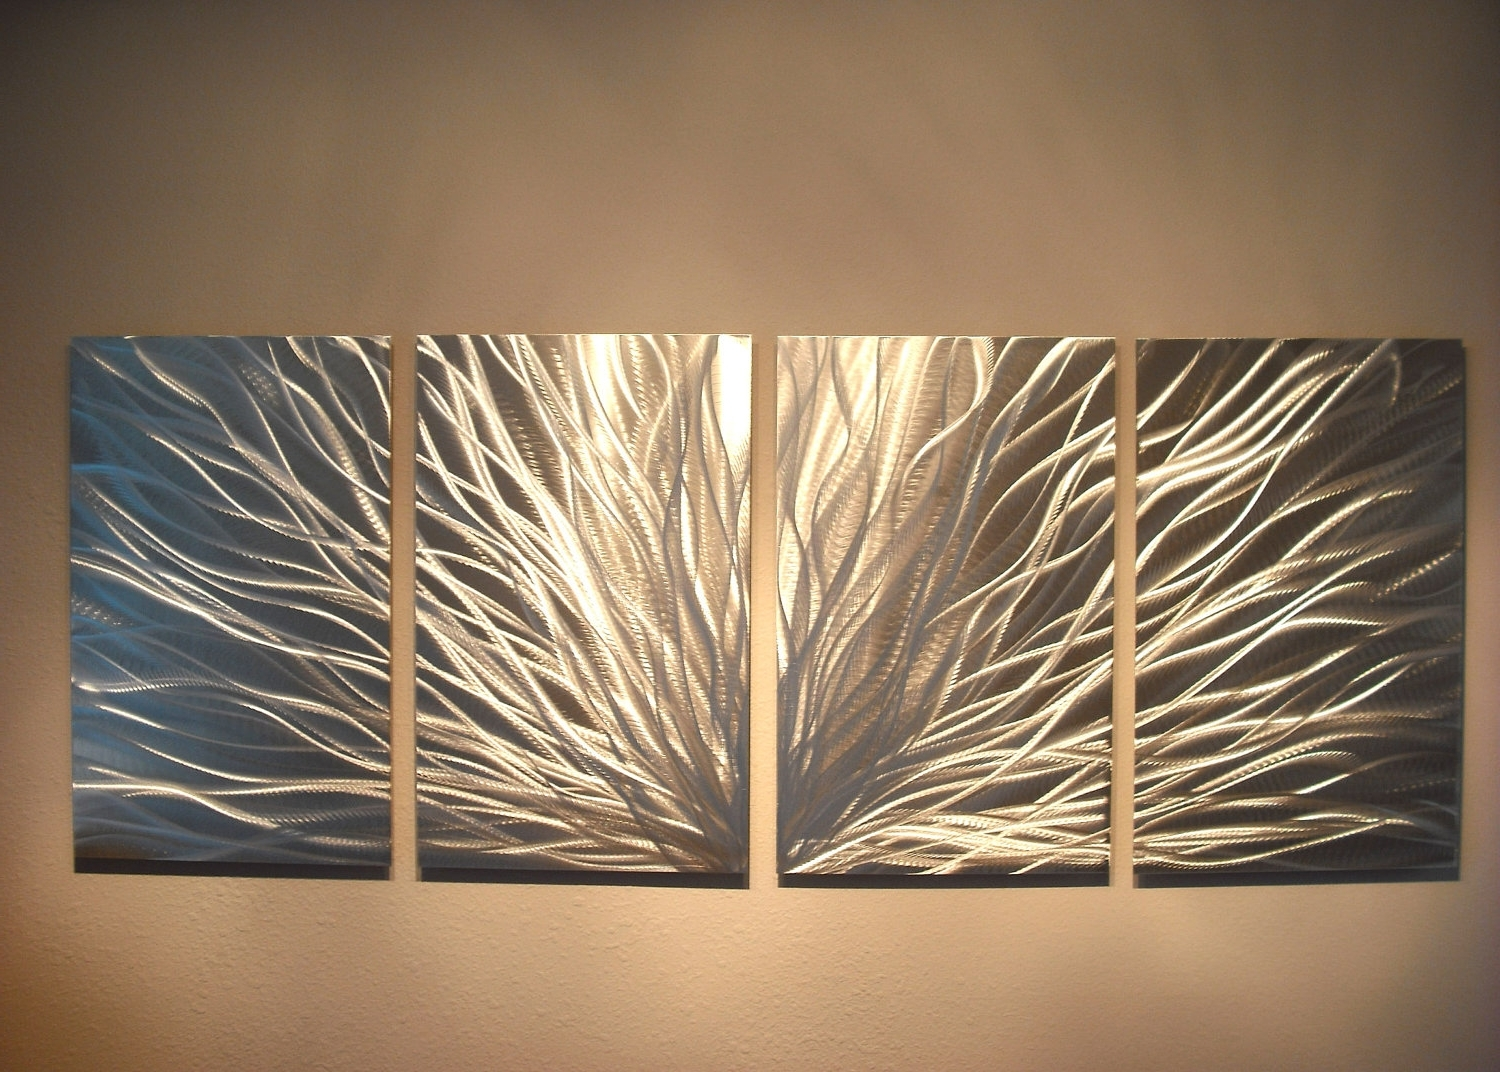 Most Current Diy Modern Abstract Wall Art Intended For Radiance – Abstract Metal Wall Art Contemporary Modern Decor (View 12 of 15)